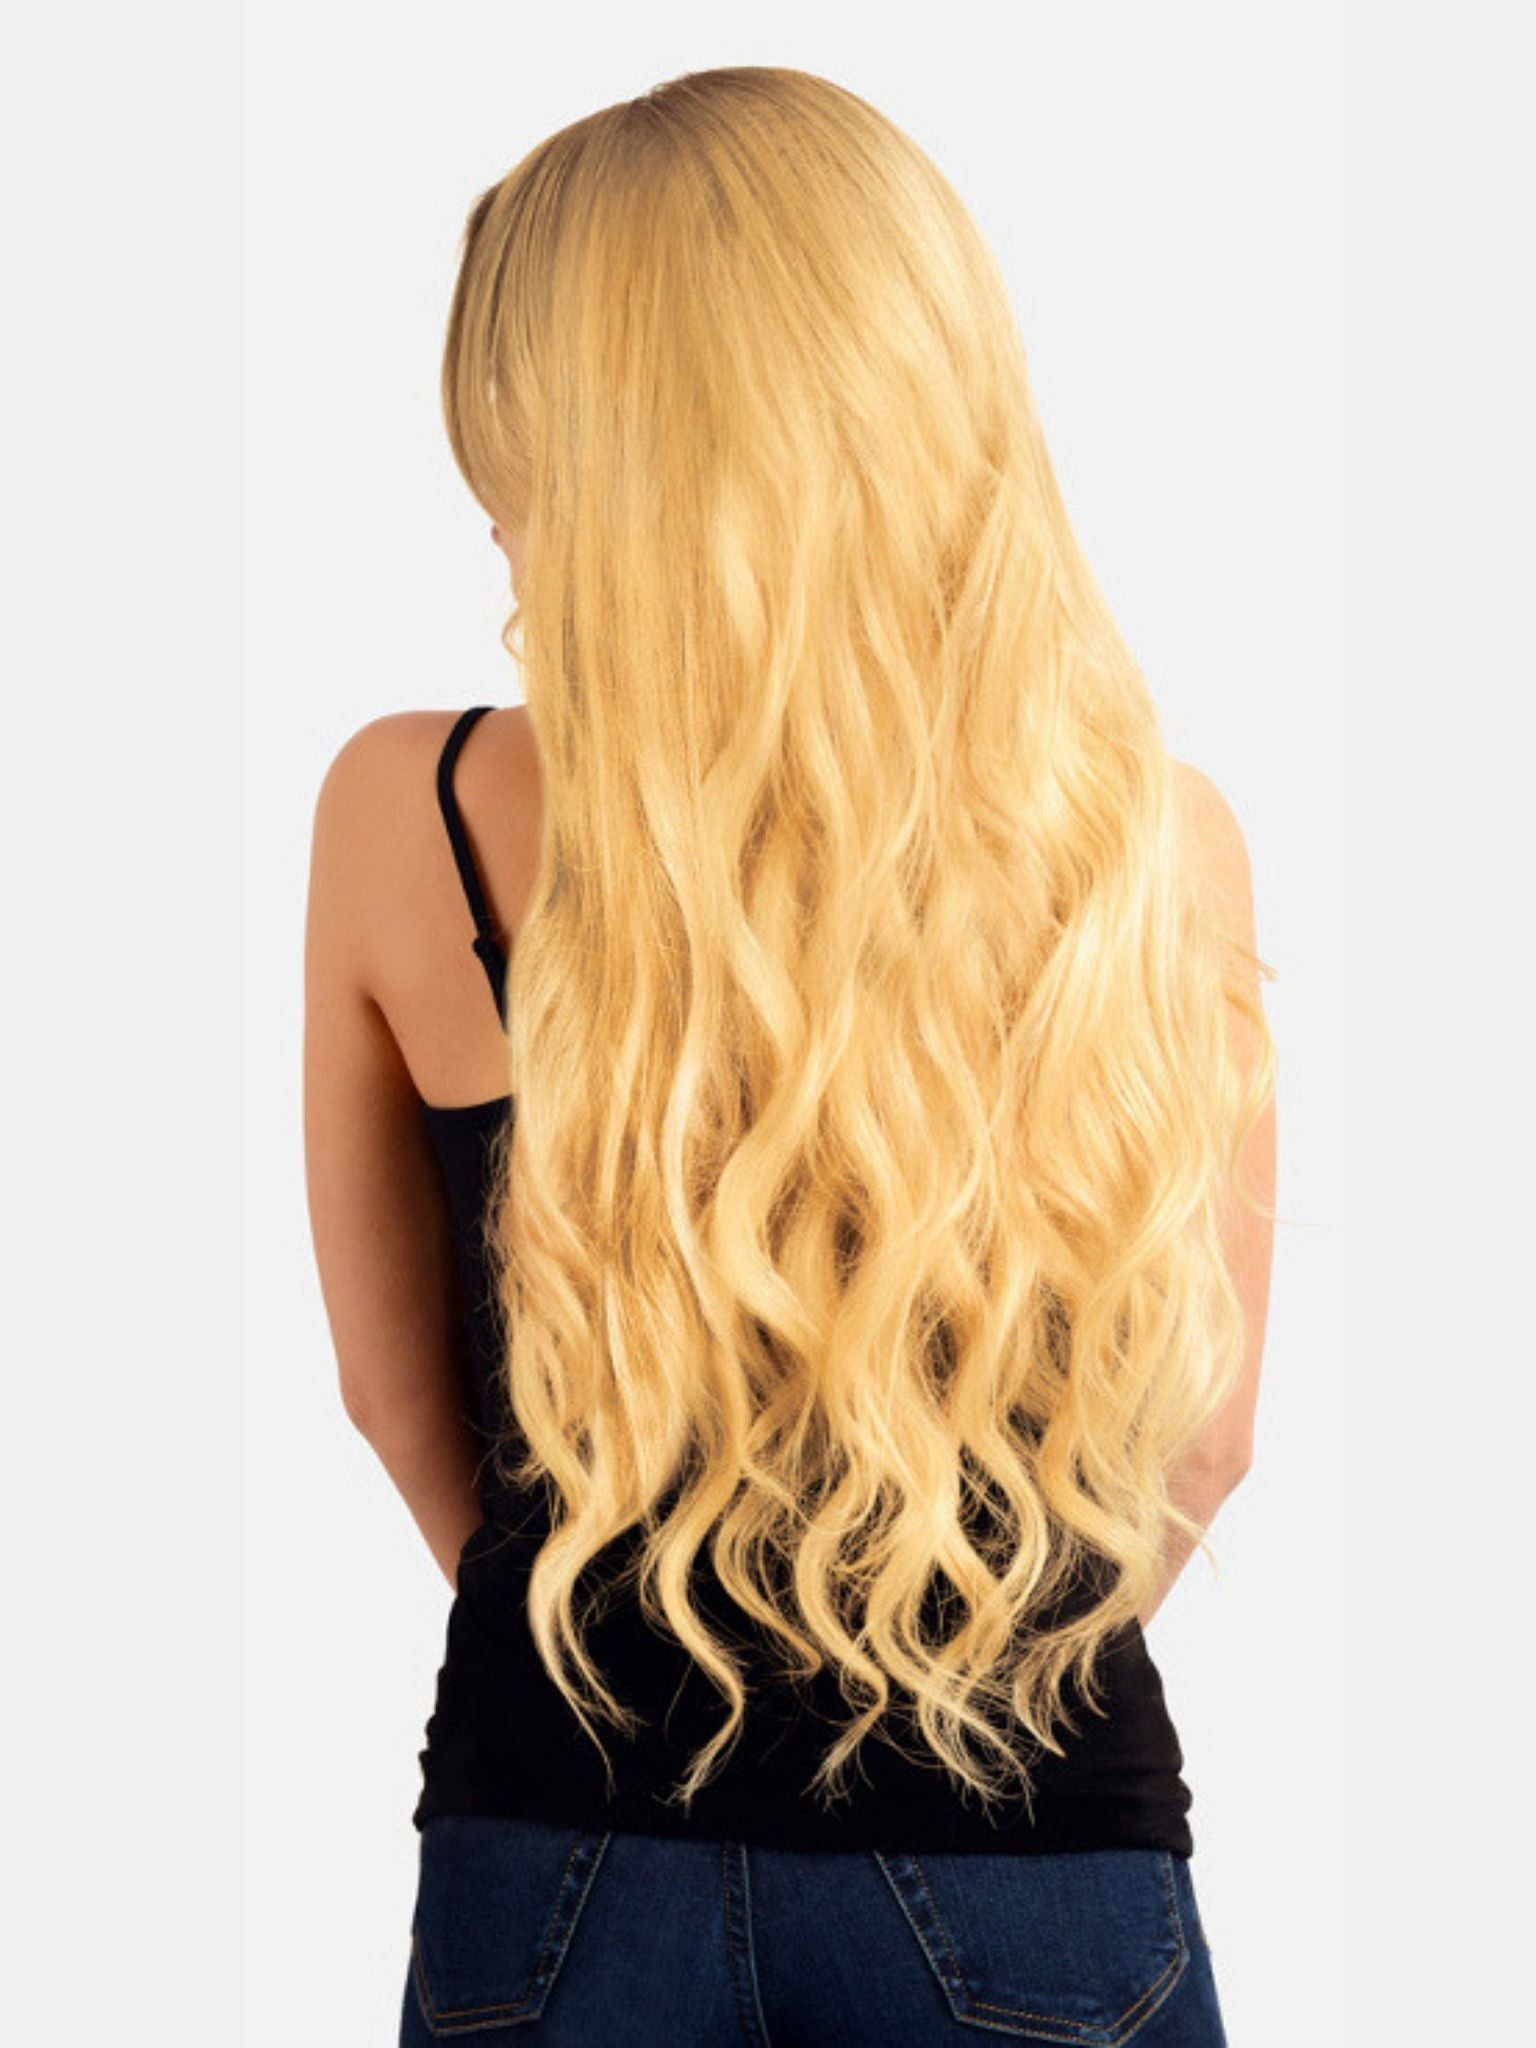 Stick Tip Hair Extensions - Bleach Blonde #613